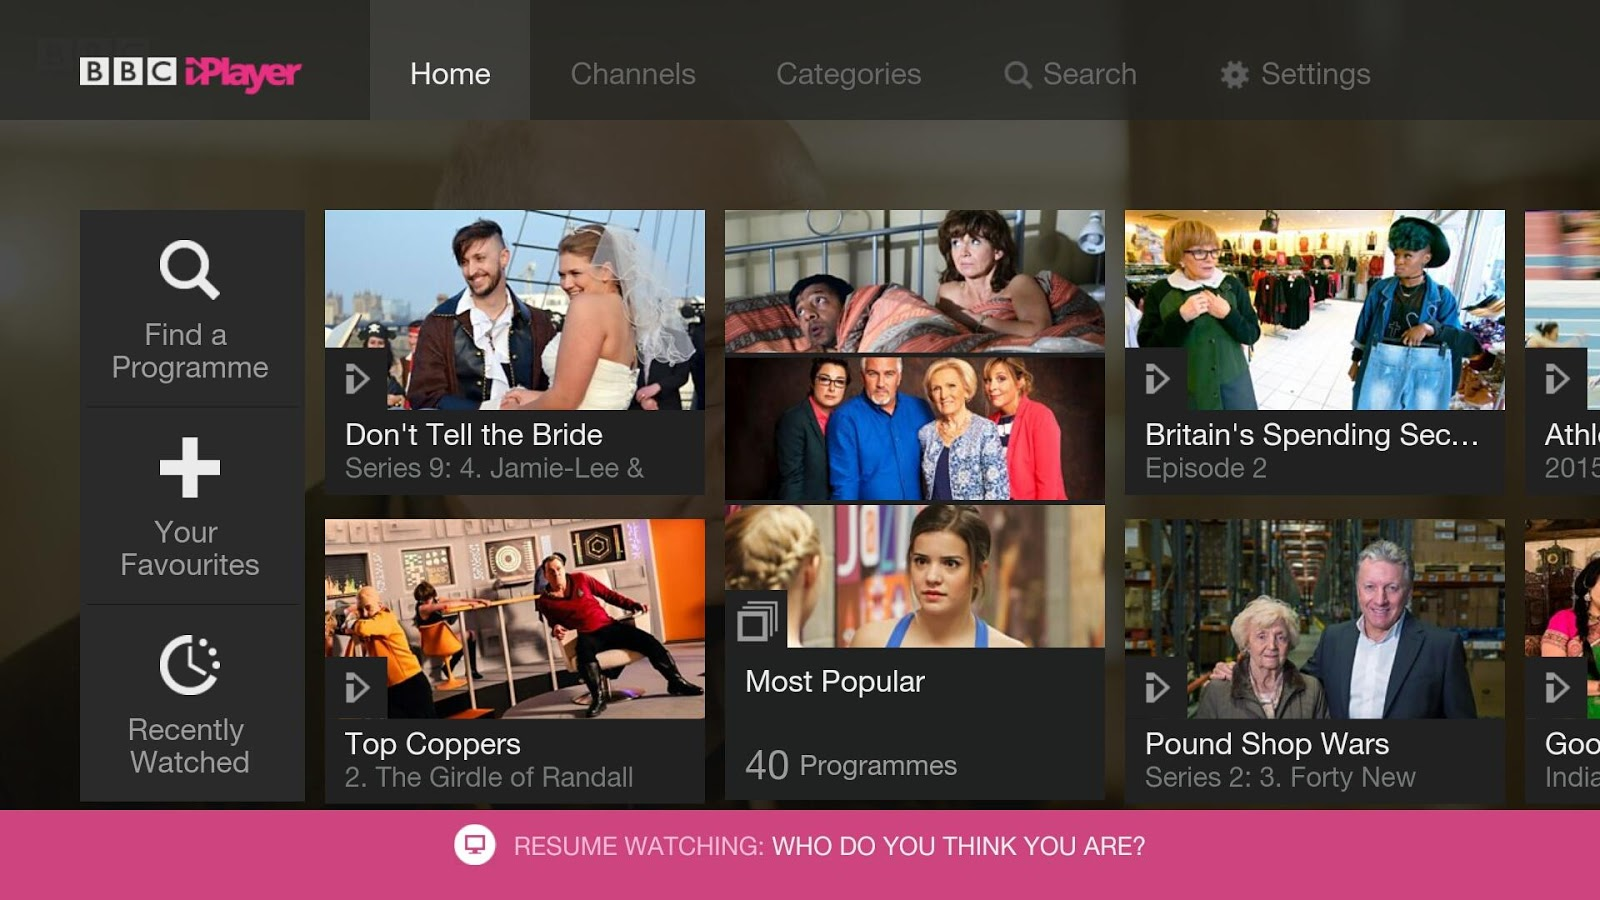 5 best free movie streaming apps for Android with the least